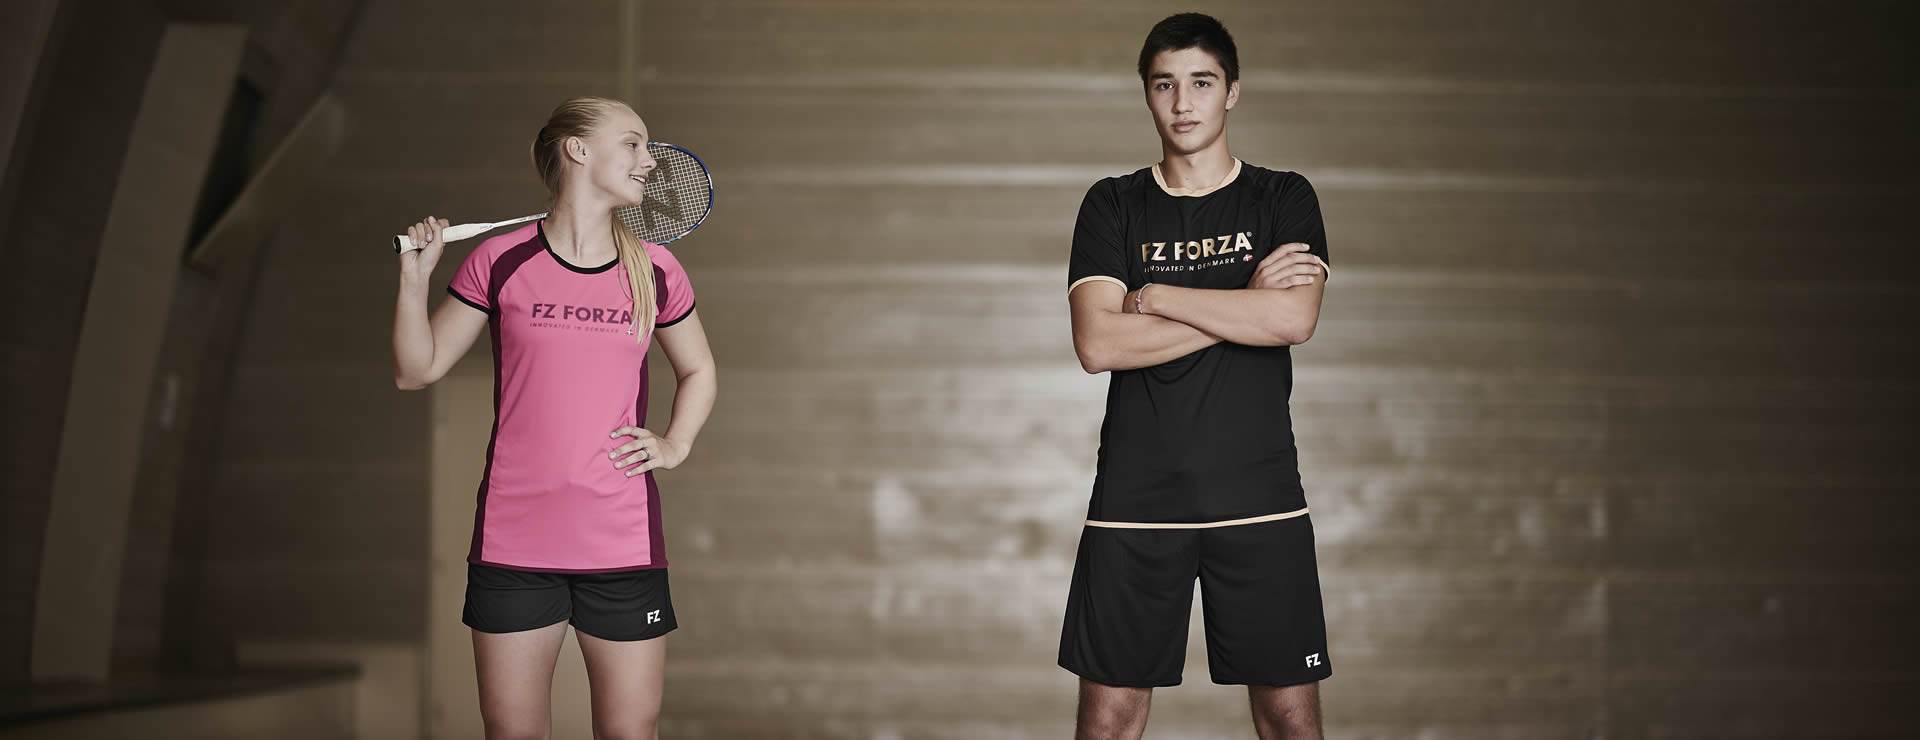 Badminton Alpha, Comprehensive Range of Court and Leisure Wear